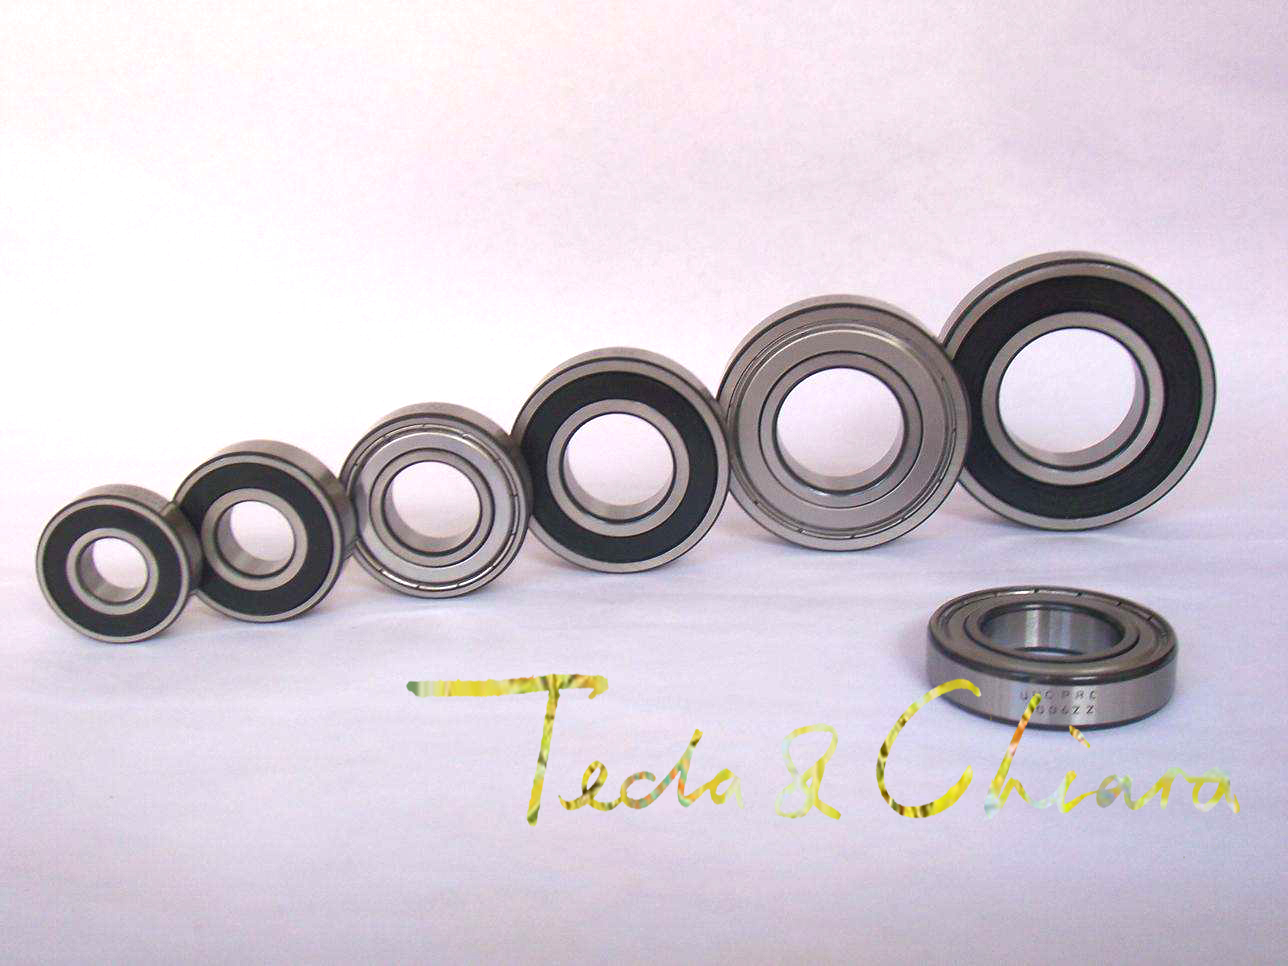 624 624ZZ 624RS 624-2Z 624Z 624-2RS ZZ RS RZ 2RZ Deep Groove Ball Bearings 4 x 13 x 5mm High Quality торшер lightstar loft арт 765714